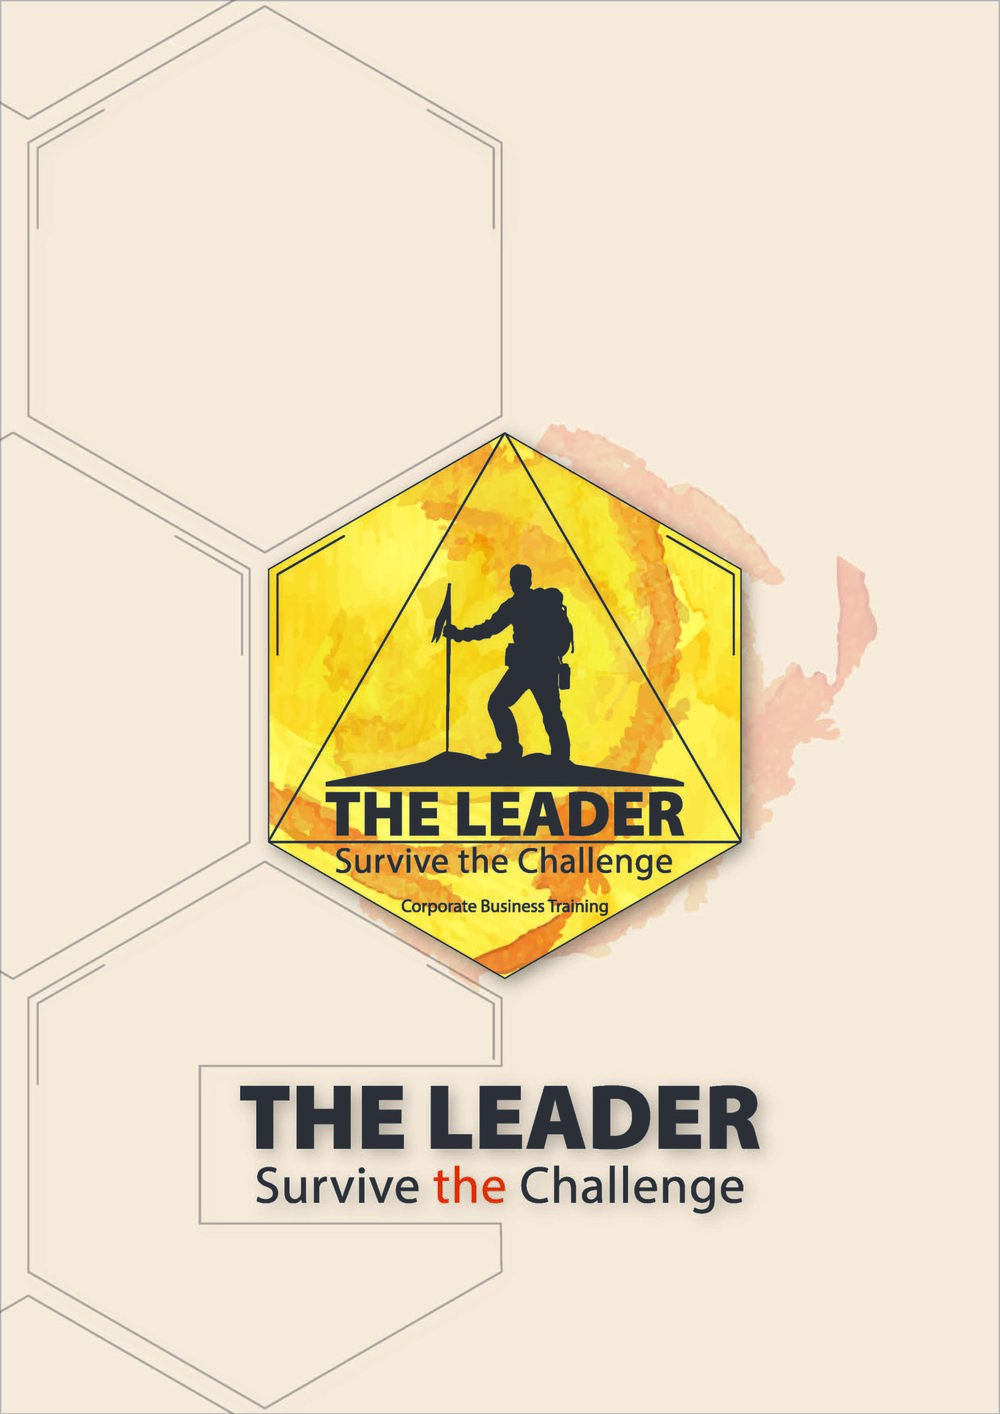 the leader a4 flyer latest version_Page_1.jpg